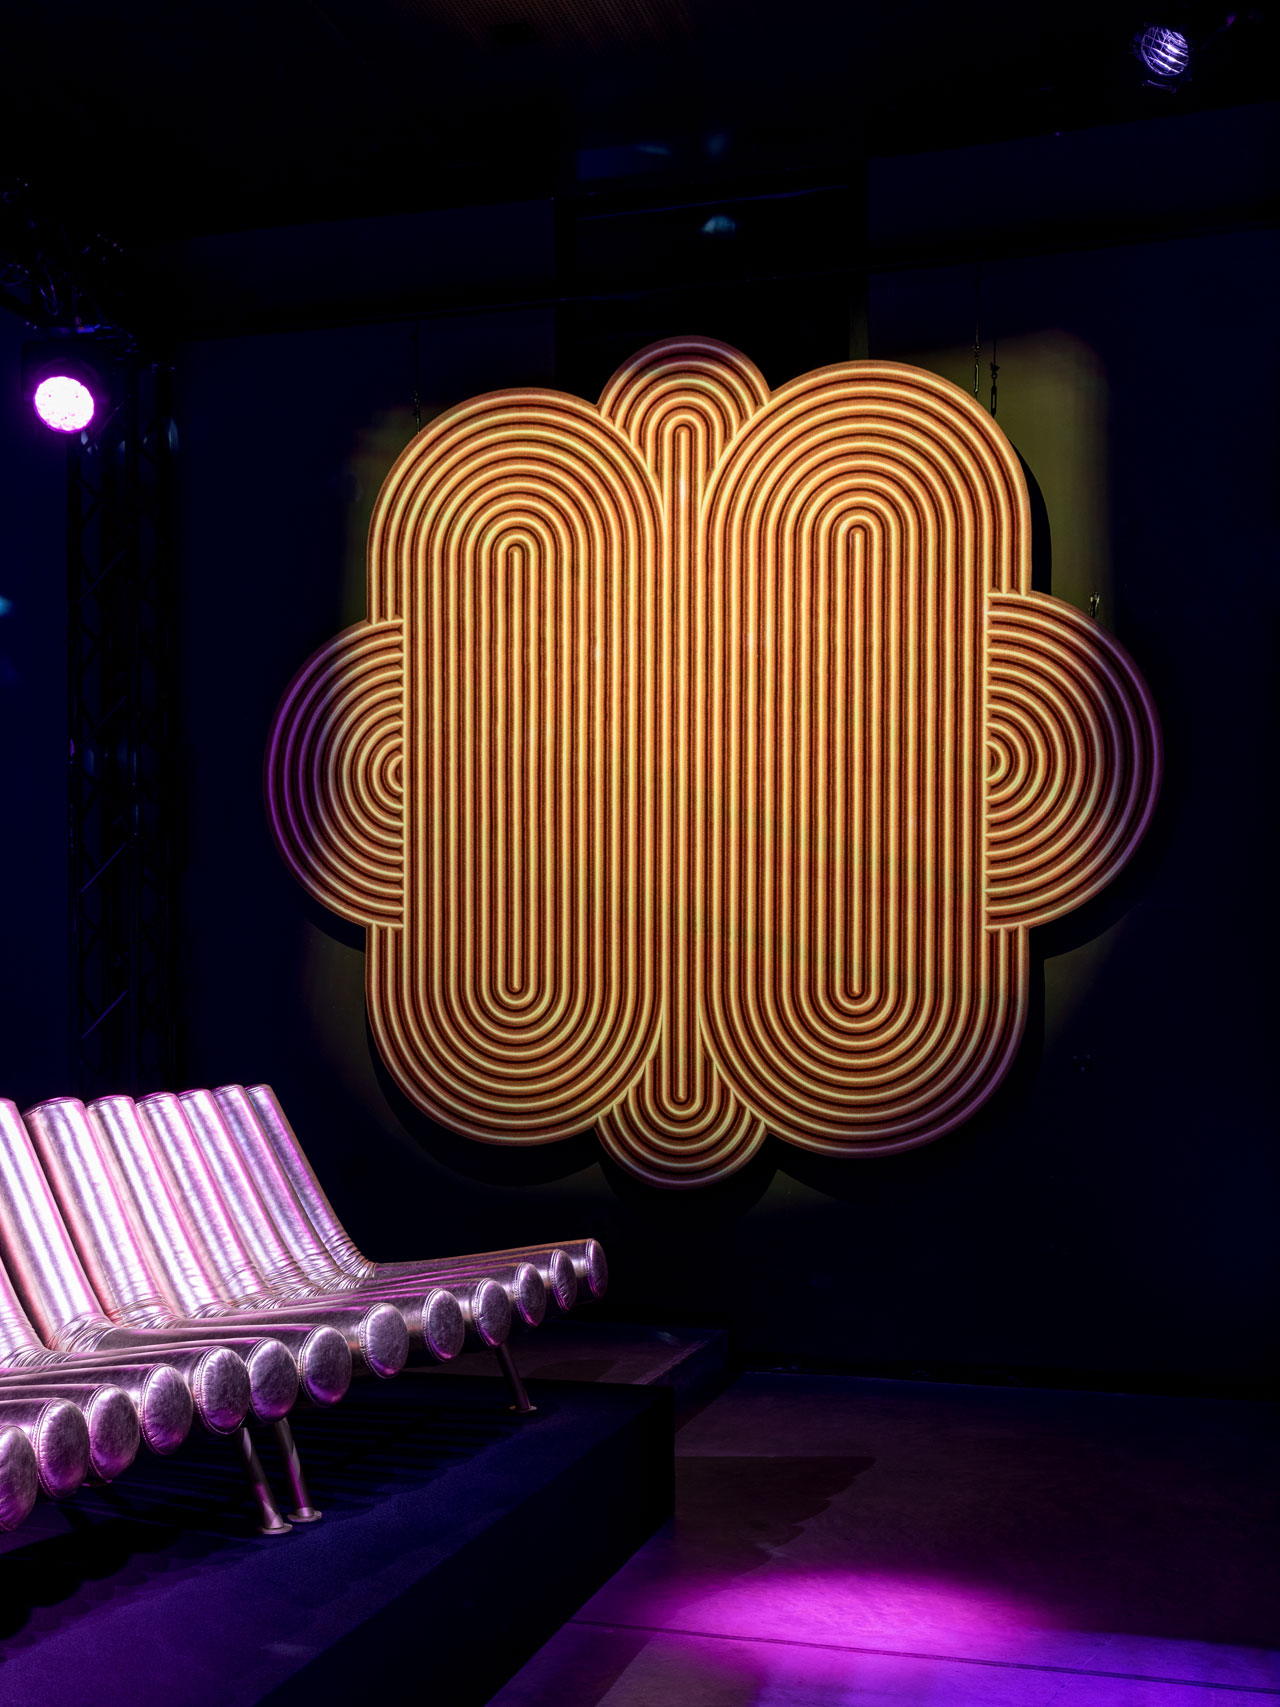 DANCE FLOOR rug by Gaëlle Gabillet et Stéphane Villard/GGSV and JIMMY sofa by Atelier Biagetti from the Disco Gufram collection.Photo by Delfino Sisto Legnani e Marco Cappelletti.